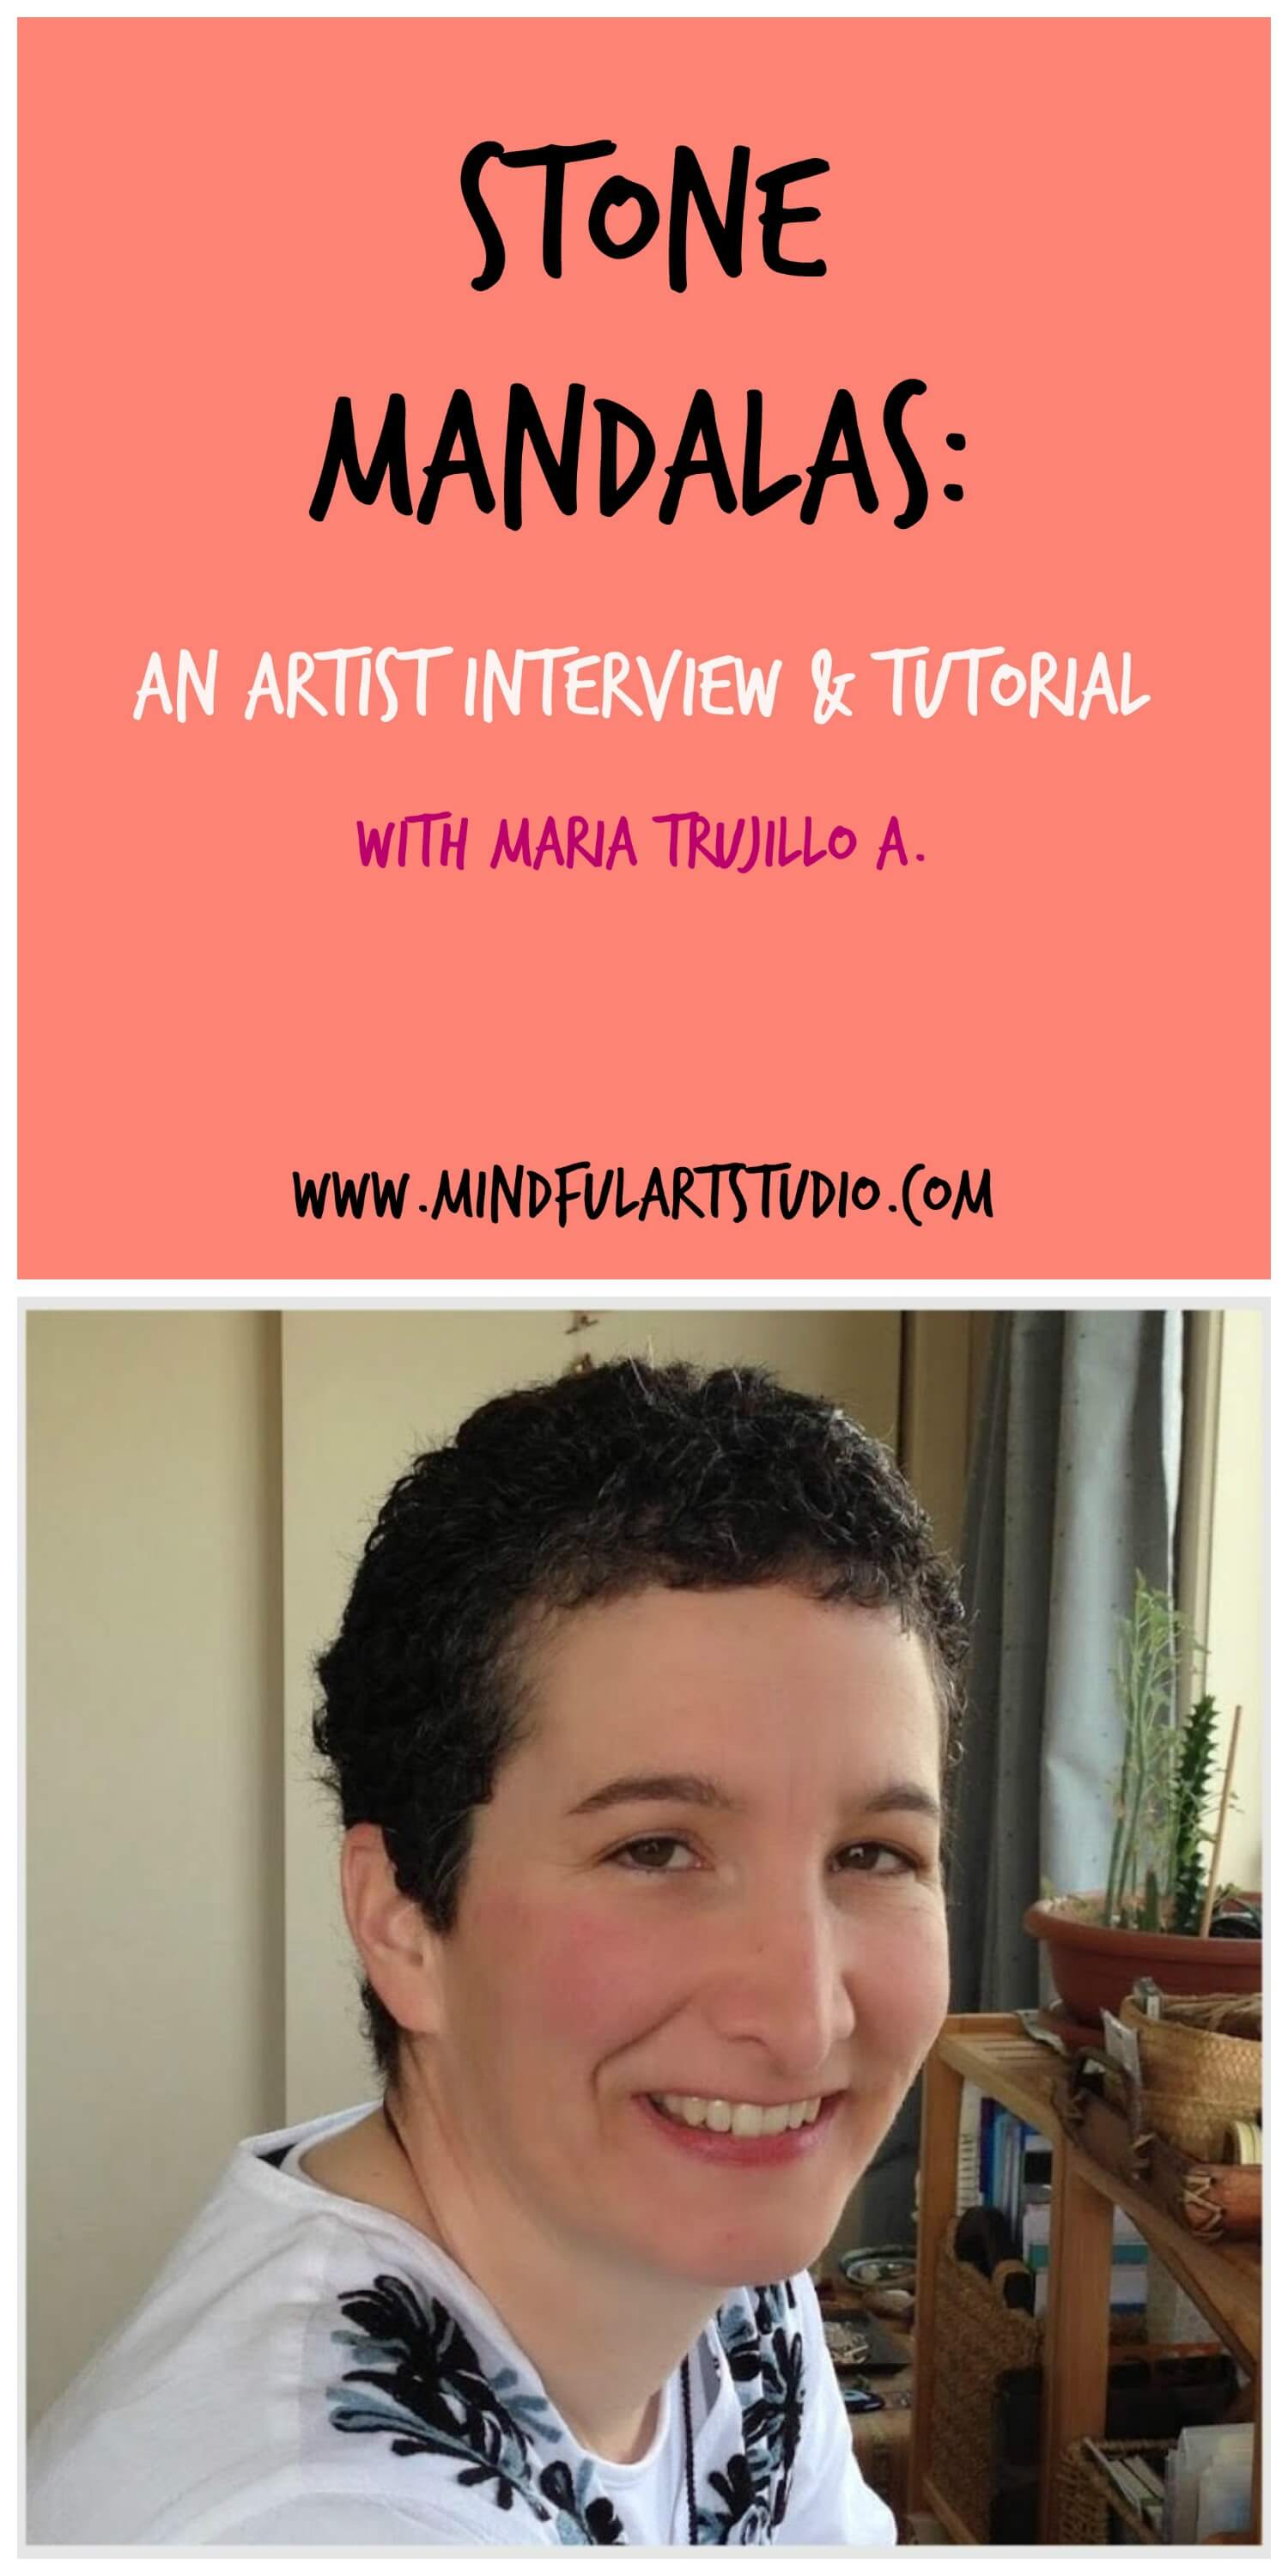 Stone Mandalas: An Artist Interview with Maria Trujillo